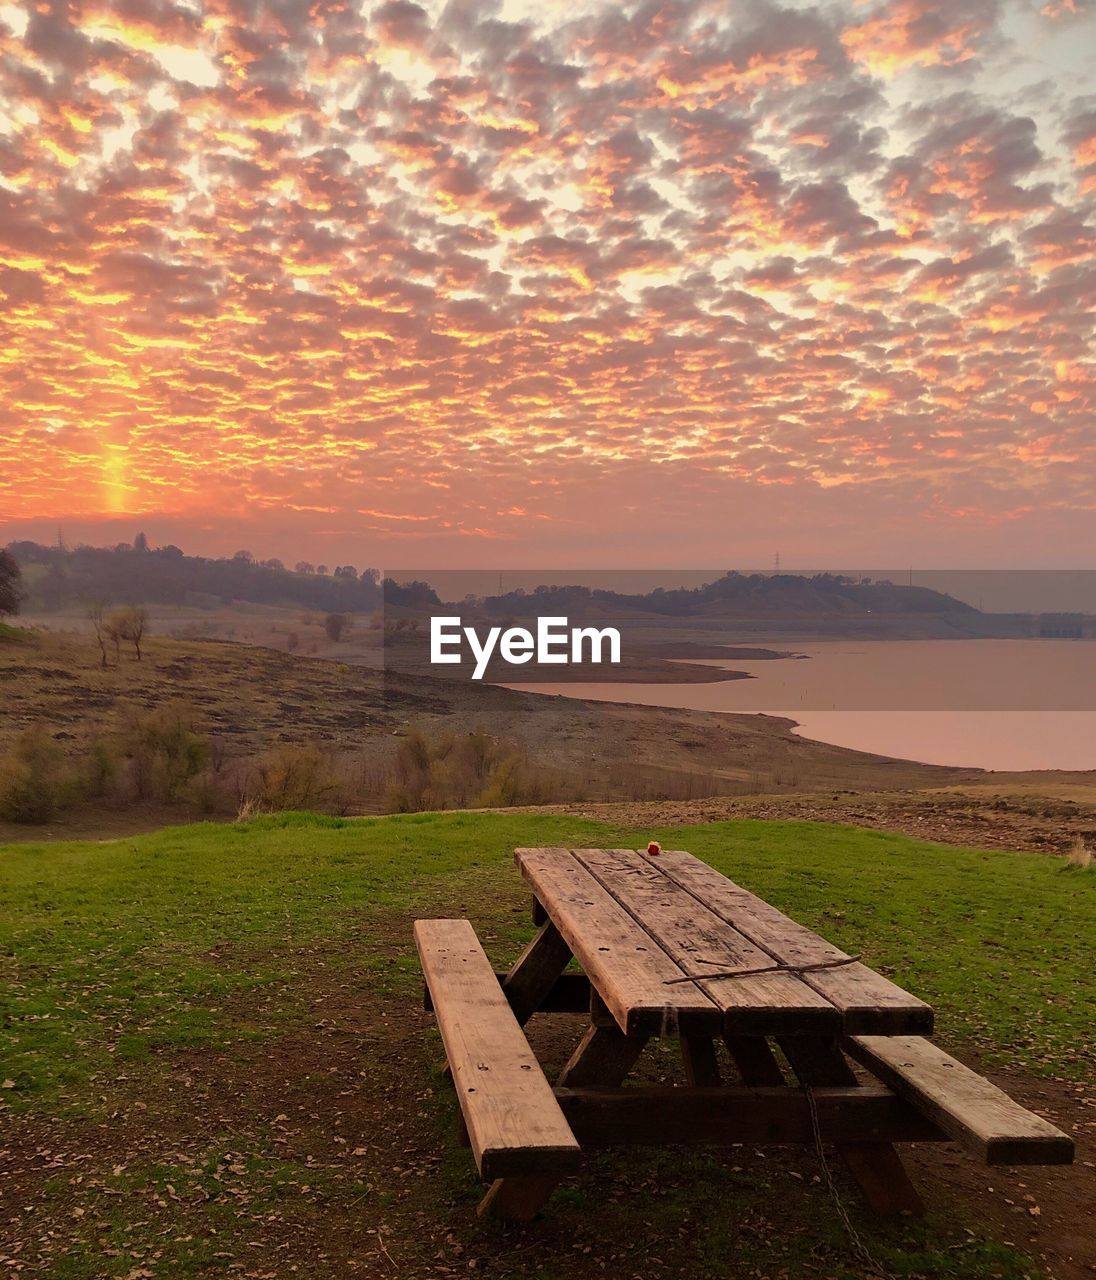 sunset, sky, scenics - nature, beauty in nature, tranquility, tranquil scene, nature, environment, grass, orange color, landscape, cloud - sky, idyllic, seat, bench, land, no people, field, non-urban scene, wood - material, outdoors, park bench